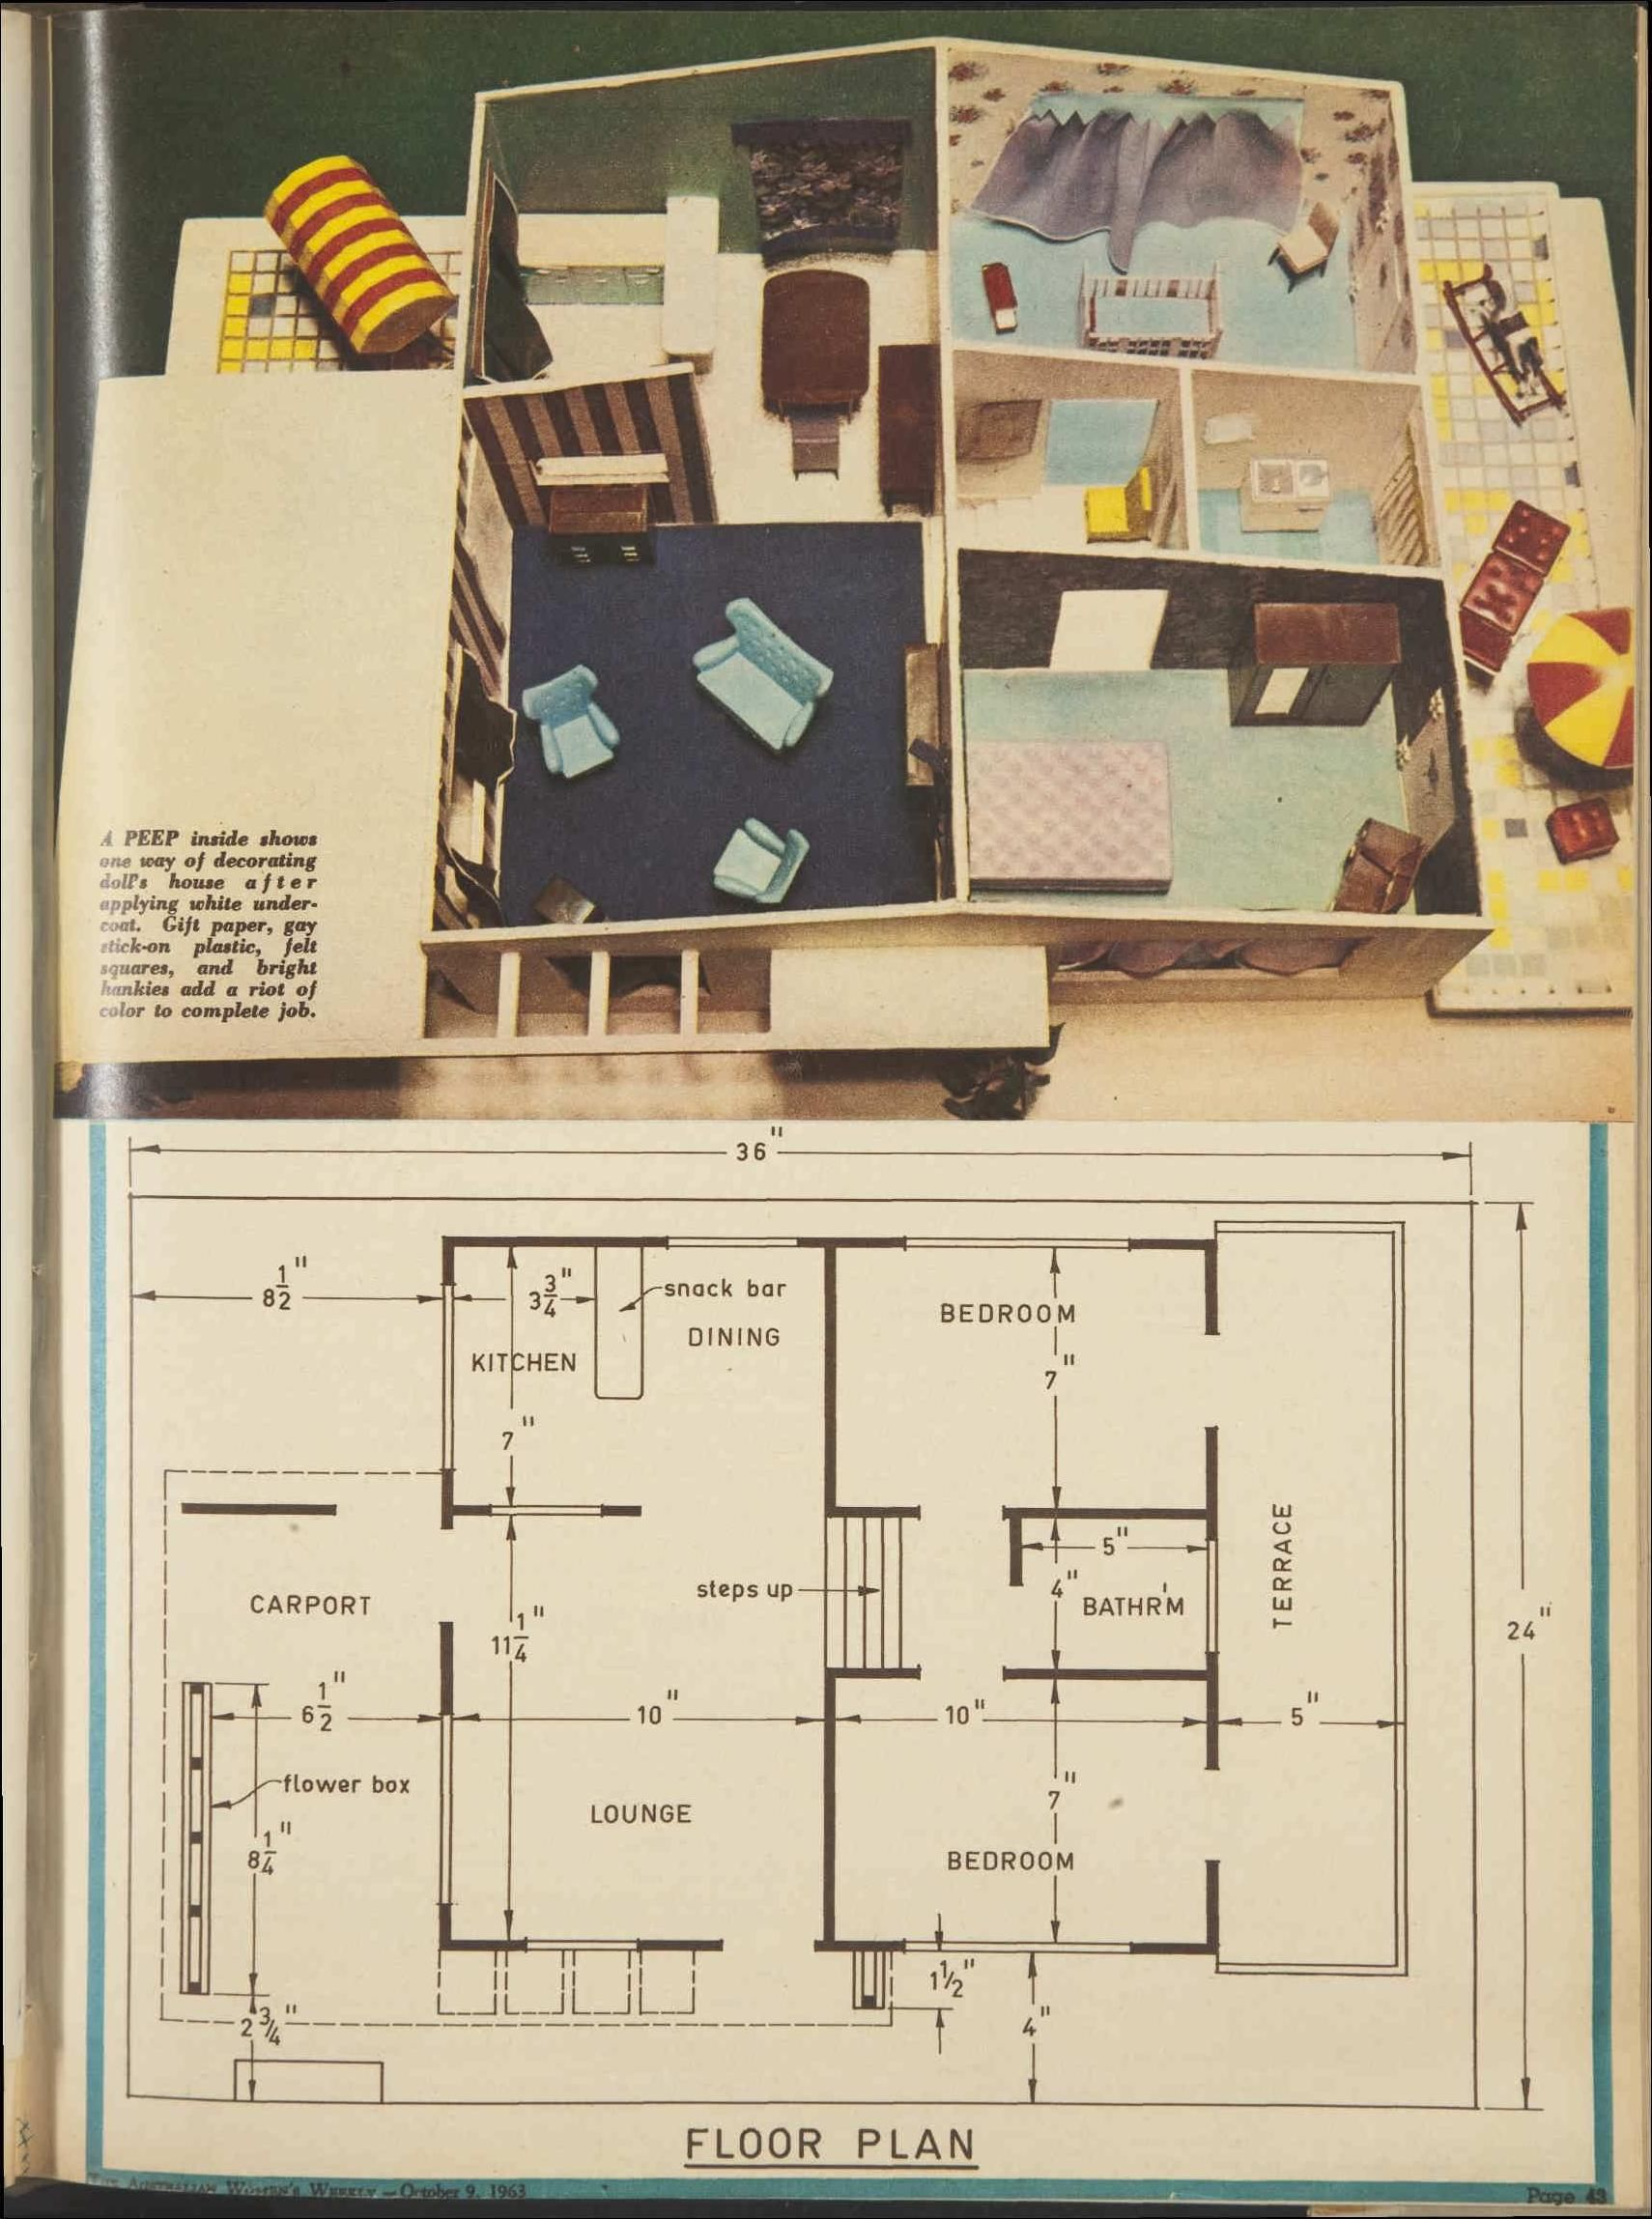 House Plan Plans For A Split Level 1960s Doll S House 9 Oct 1963 The Dollhouse Furniture Plans Doll House Plans Dollhouse Woodworking Plans